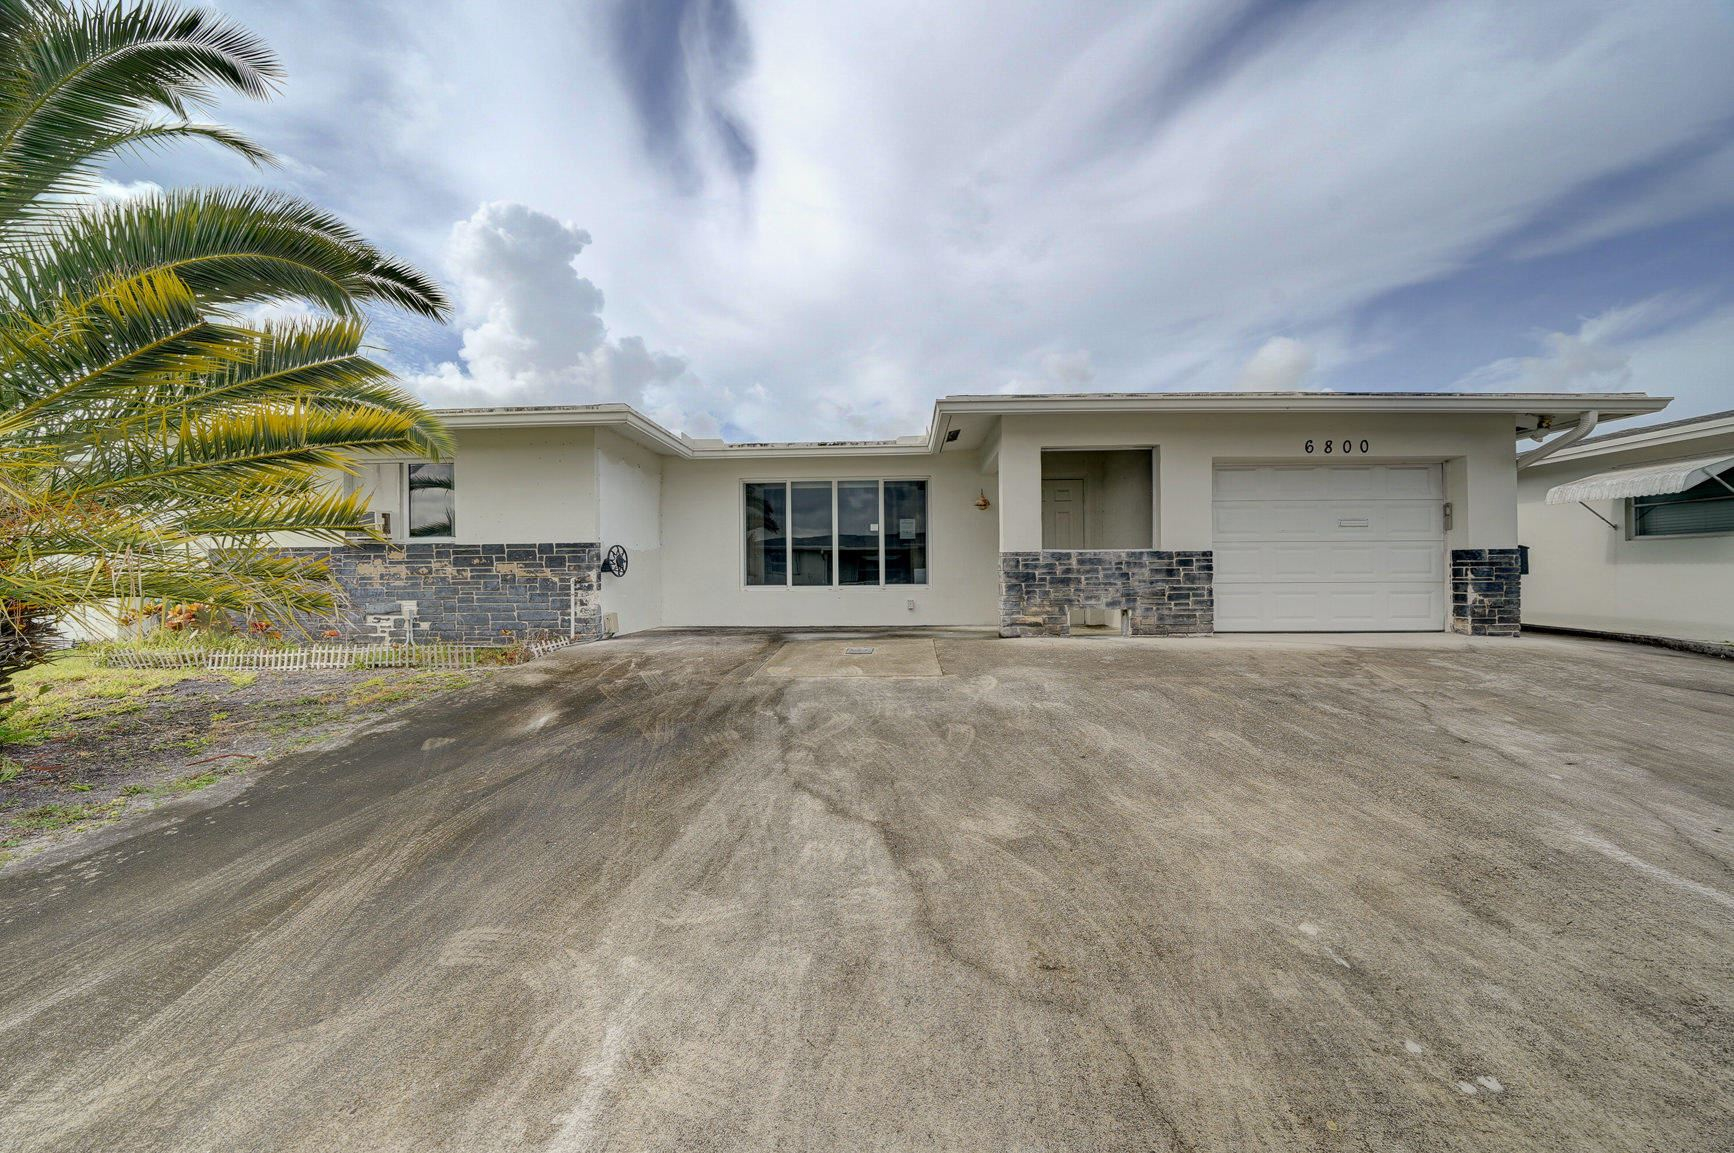 6800 NW 14th Court, Margate, FL 33063 - #: RX-10723221